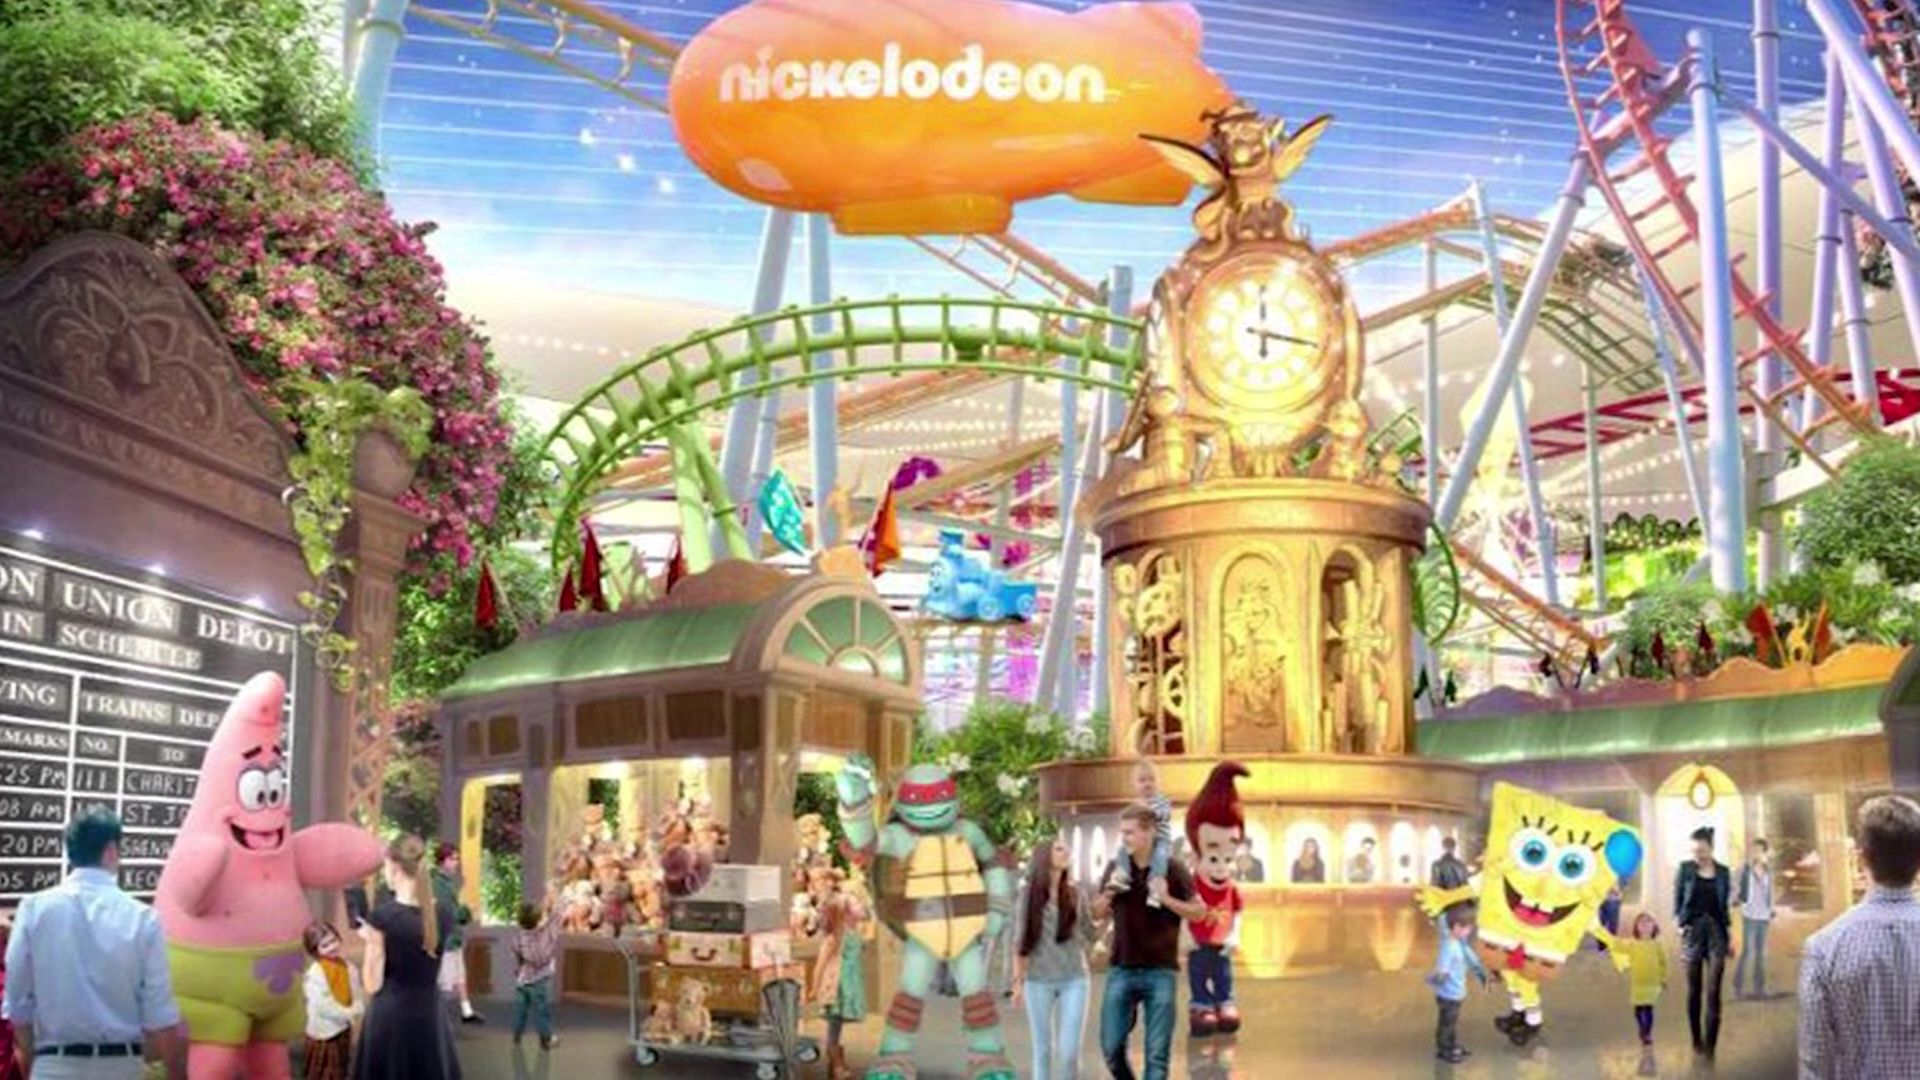 Nickelodeon Is Set To Open A Massive Indoor Theme Park In New Jersey This Week